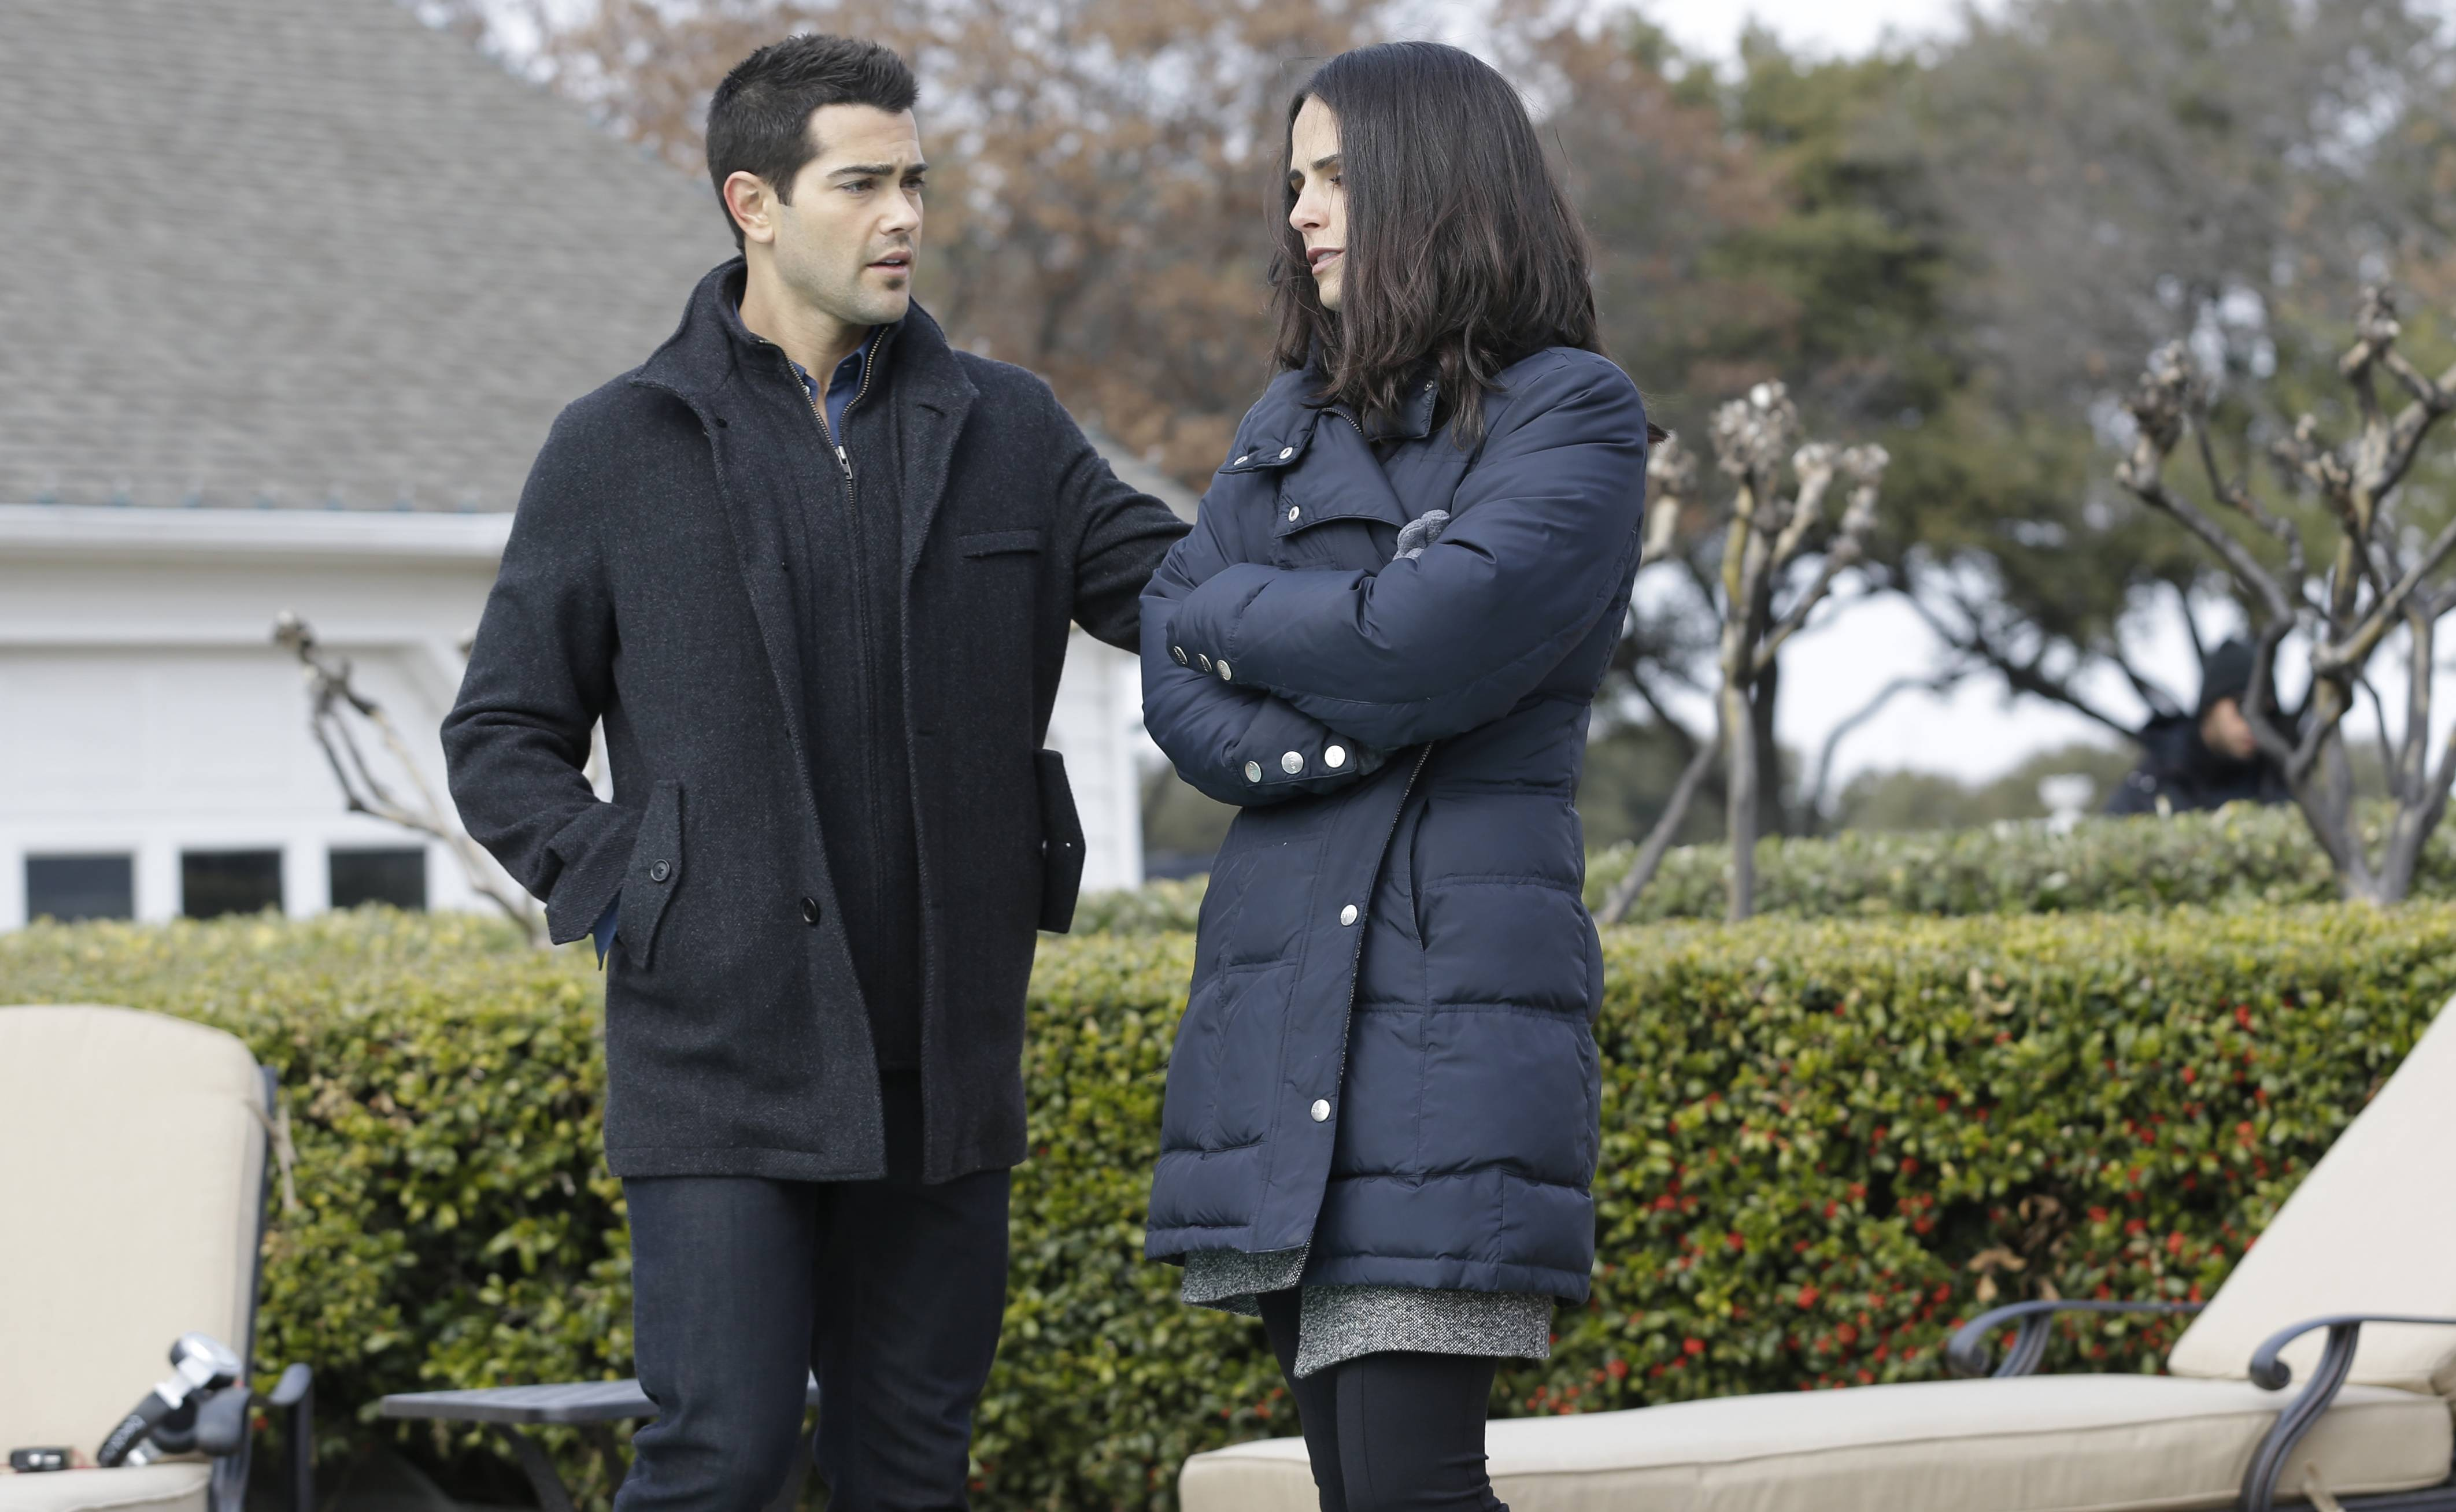 "Jesse Metcalfe and Jordana Brewster rehearse a scene during production of the television series ""Dallas"" at Southfork Ranch in Parker, Texas. The third season of the reboot of the classic series, which premieres Monday, Feb. 24, on TNT, marks the first full season without Larry Hagman, who died of complications from cancer in November 2012 at age 81."